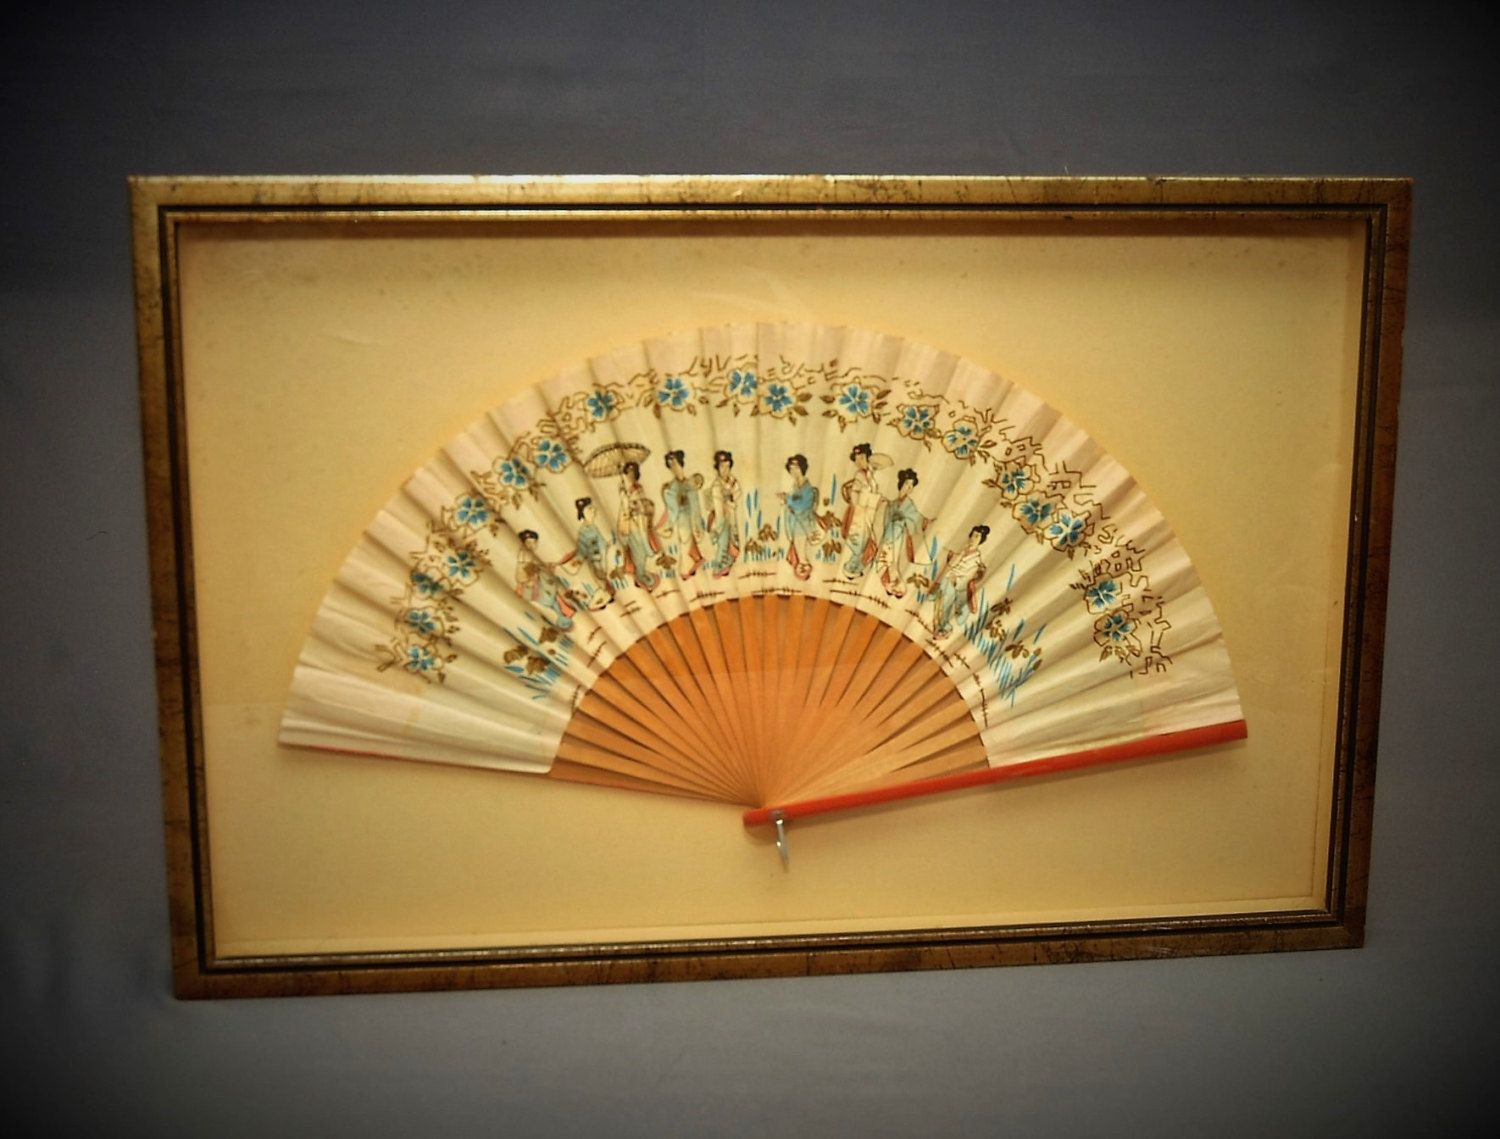 Vintage Japanese Fan - Circa 1940s - Japanese Decor - Japanese ...